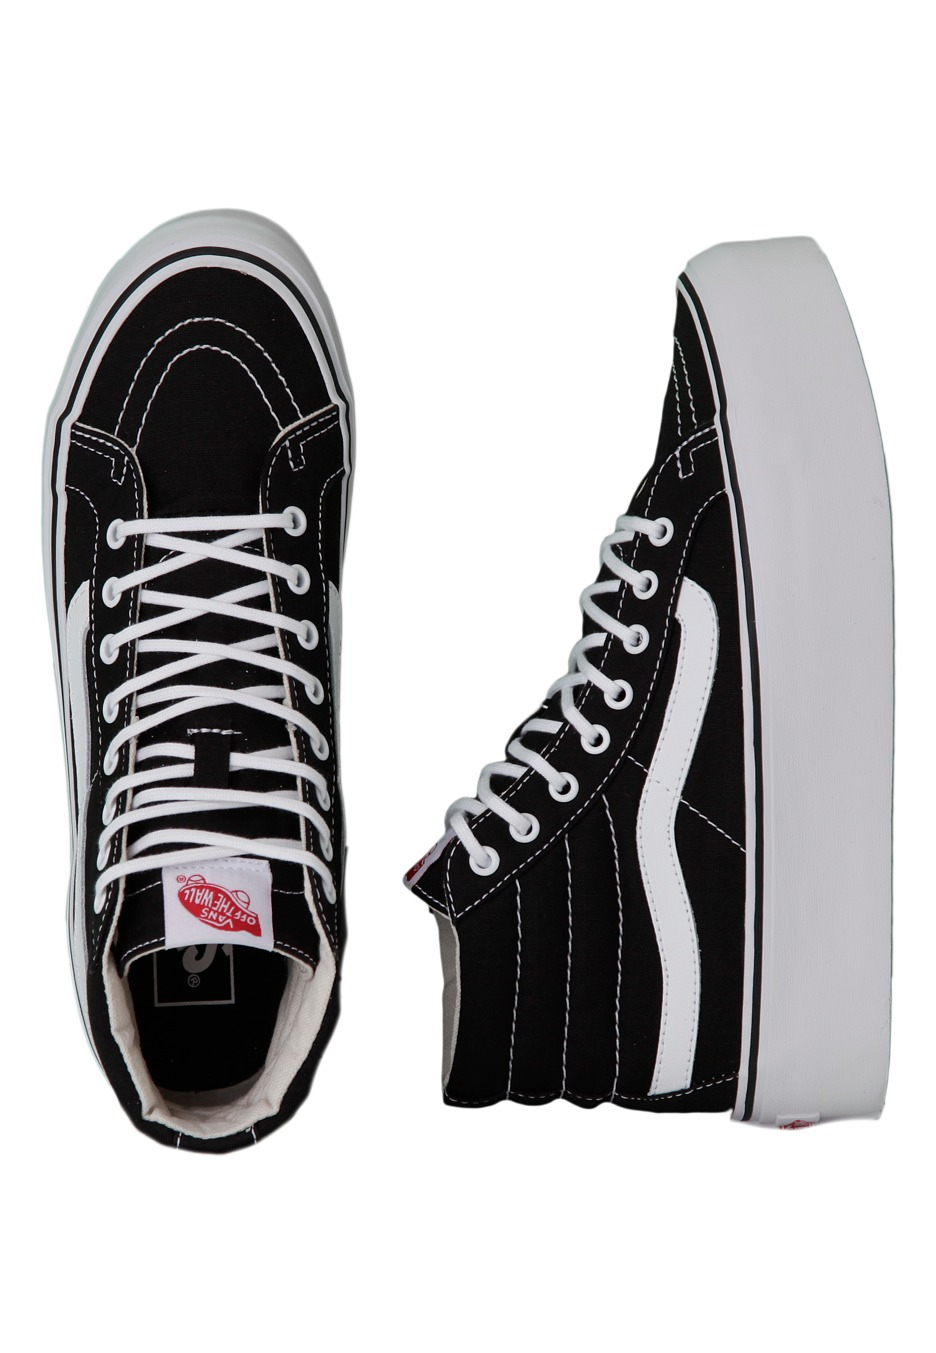 Vans - Sk8-Hi Platform Canvas Black True - Girl Shoes - Impericon.com UK 38501feabcb